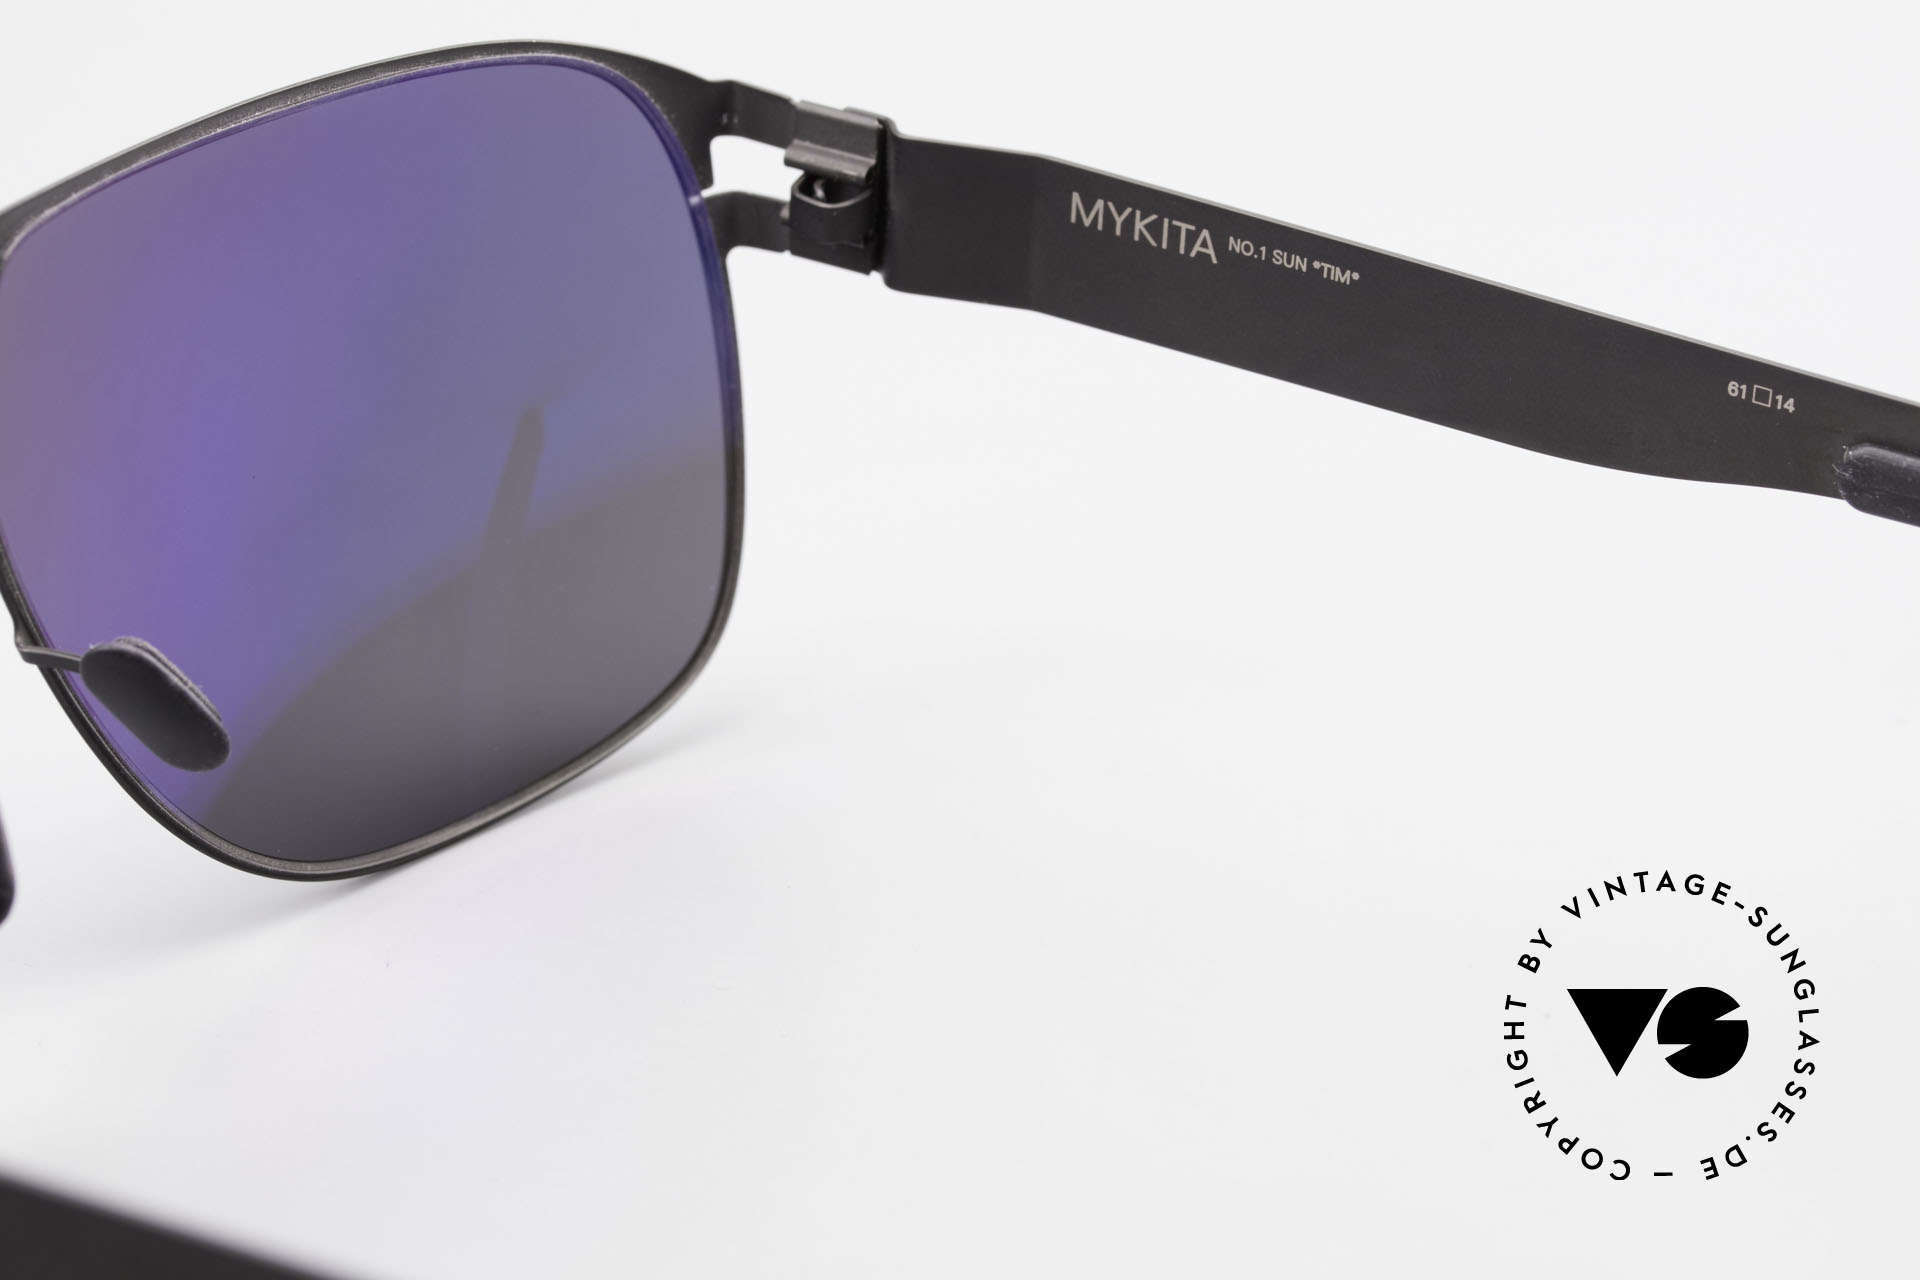 Mykita Tim No 1 Collection Shades 2011's, thus, now available from us (unworn and with orig. case), Made for Men